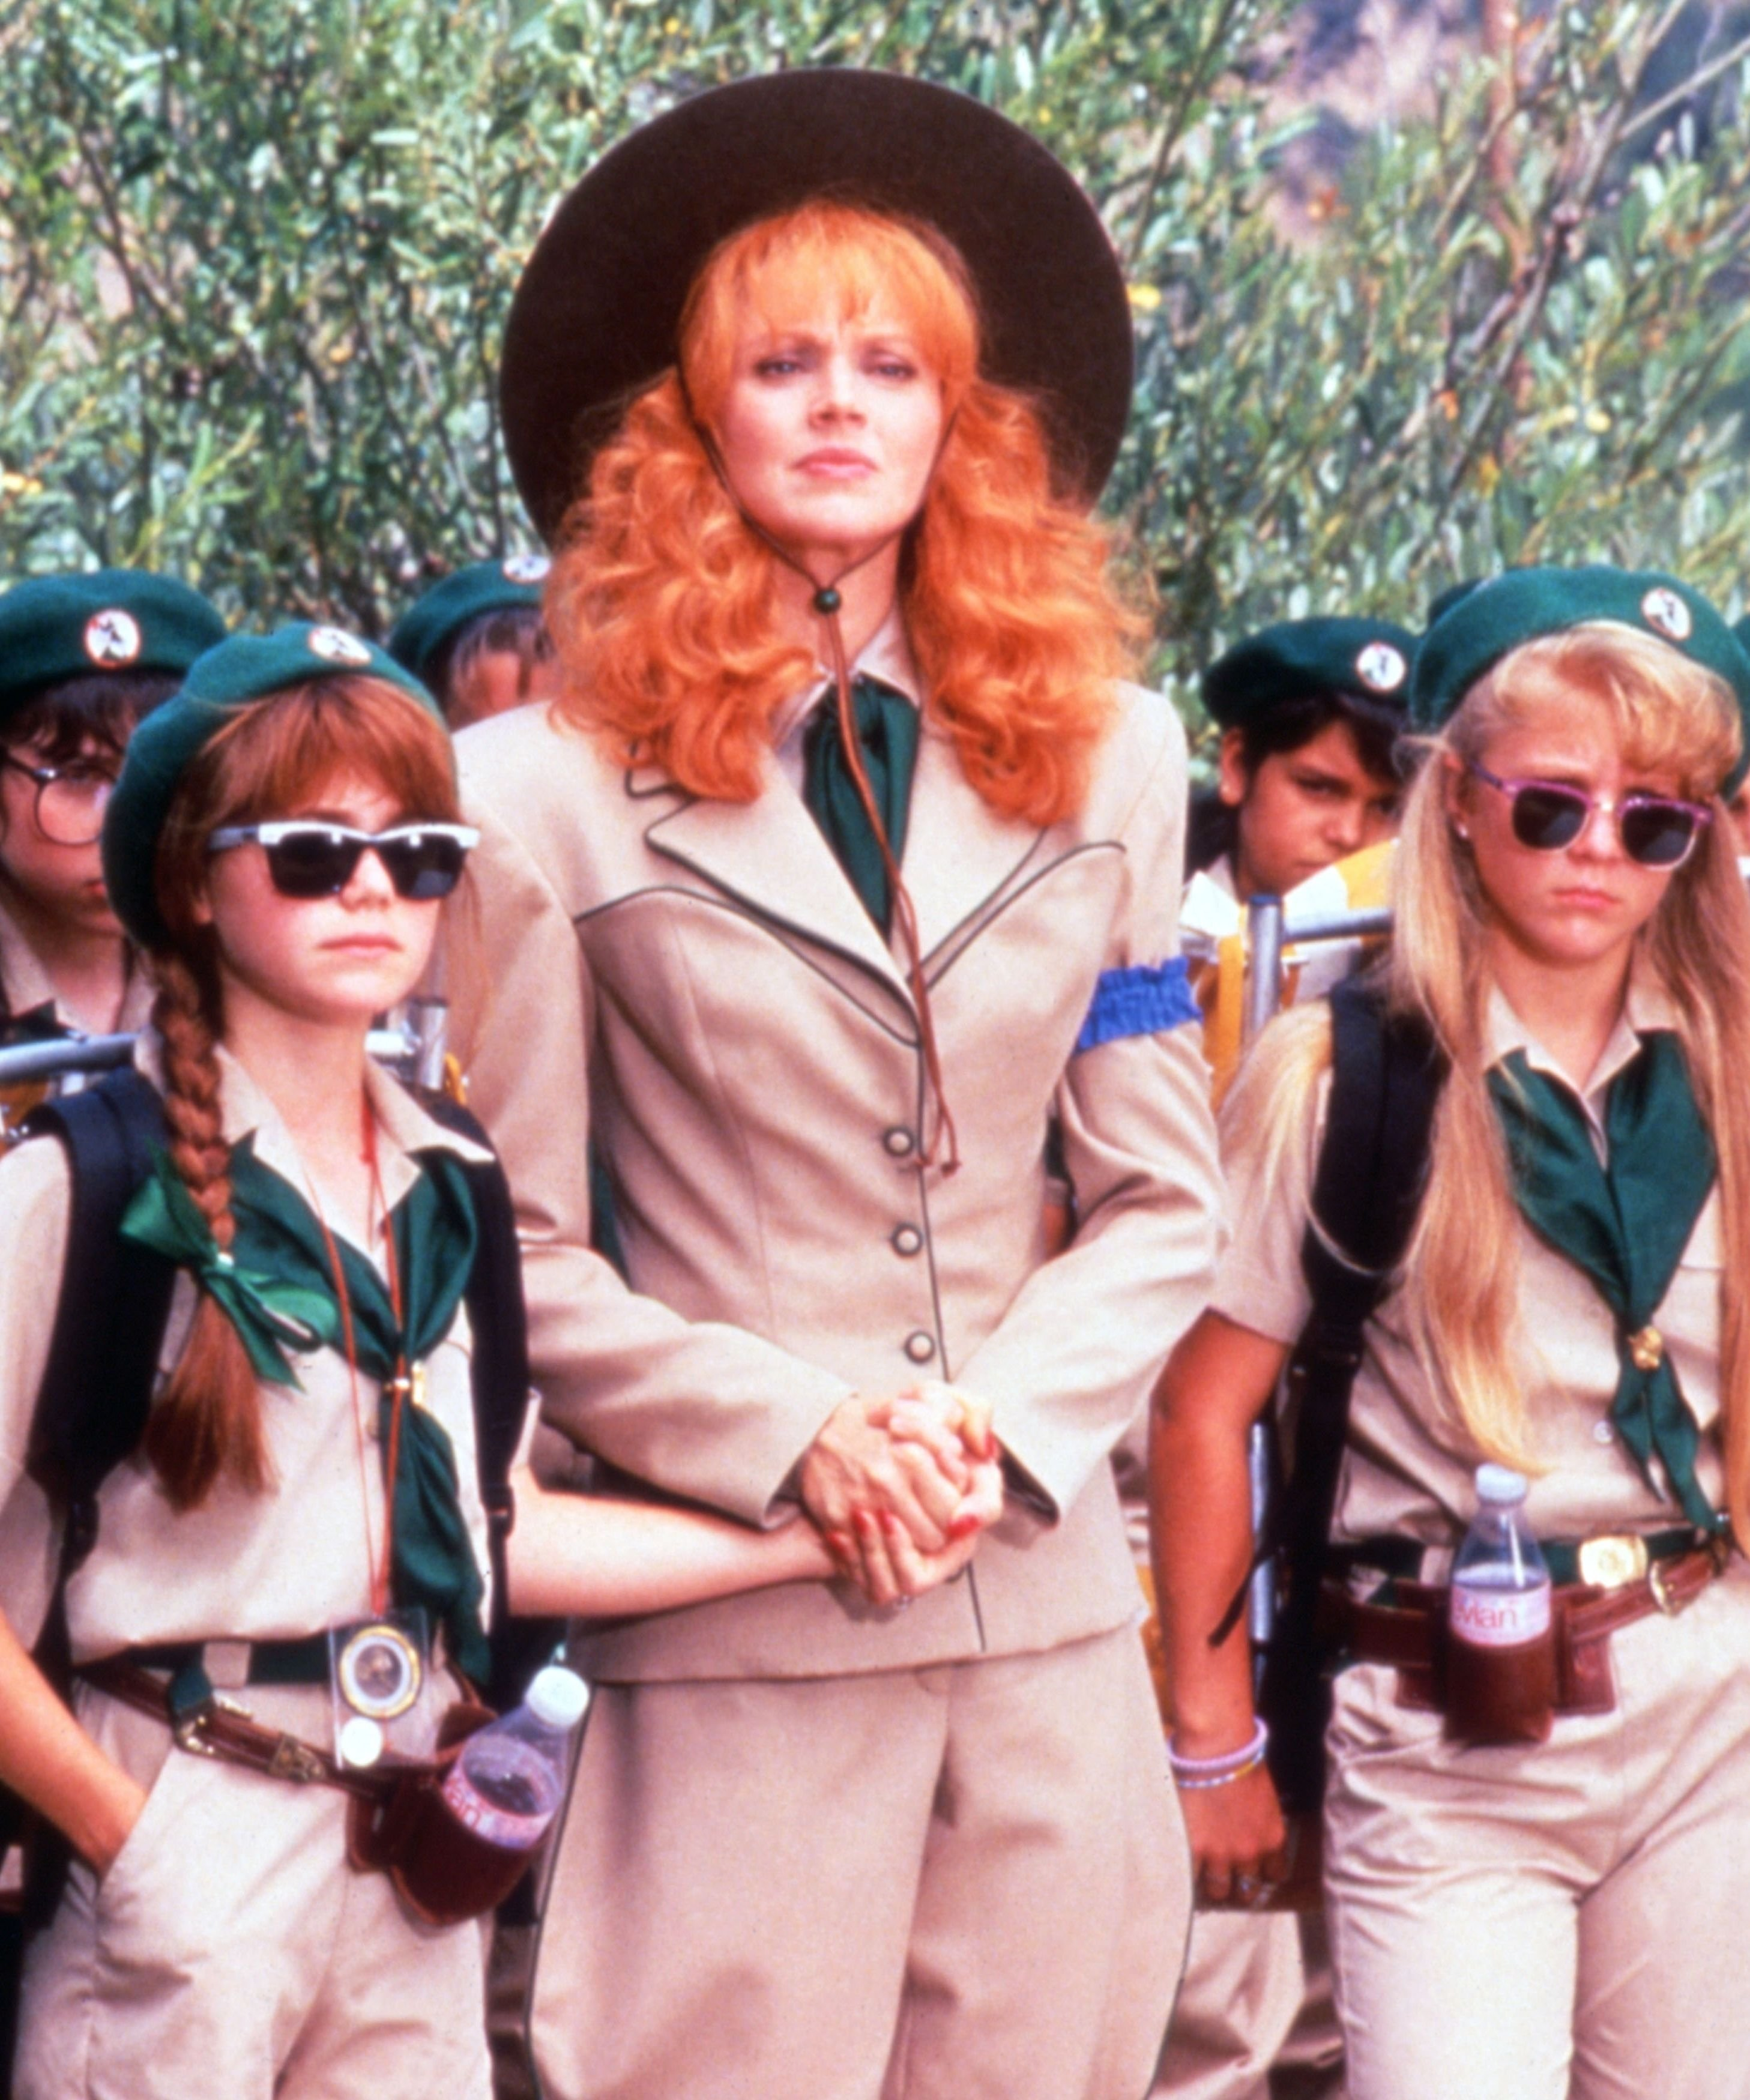 10 Most Popular Halloween Costume Ideas From Movies 80s movie halloween costumes pop culture film